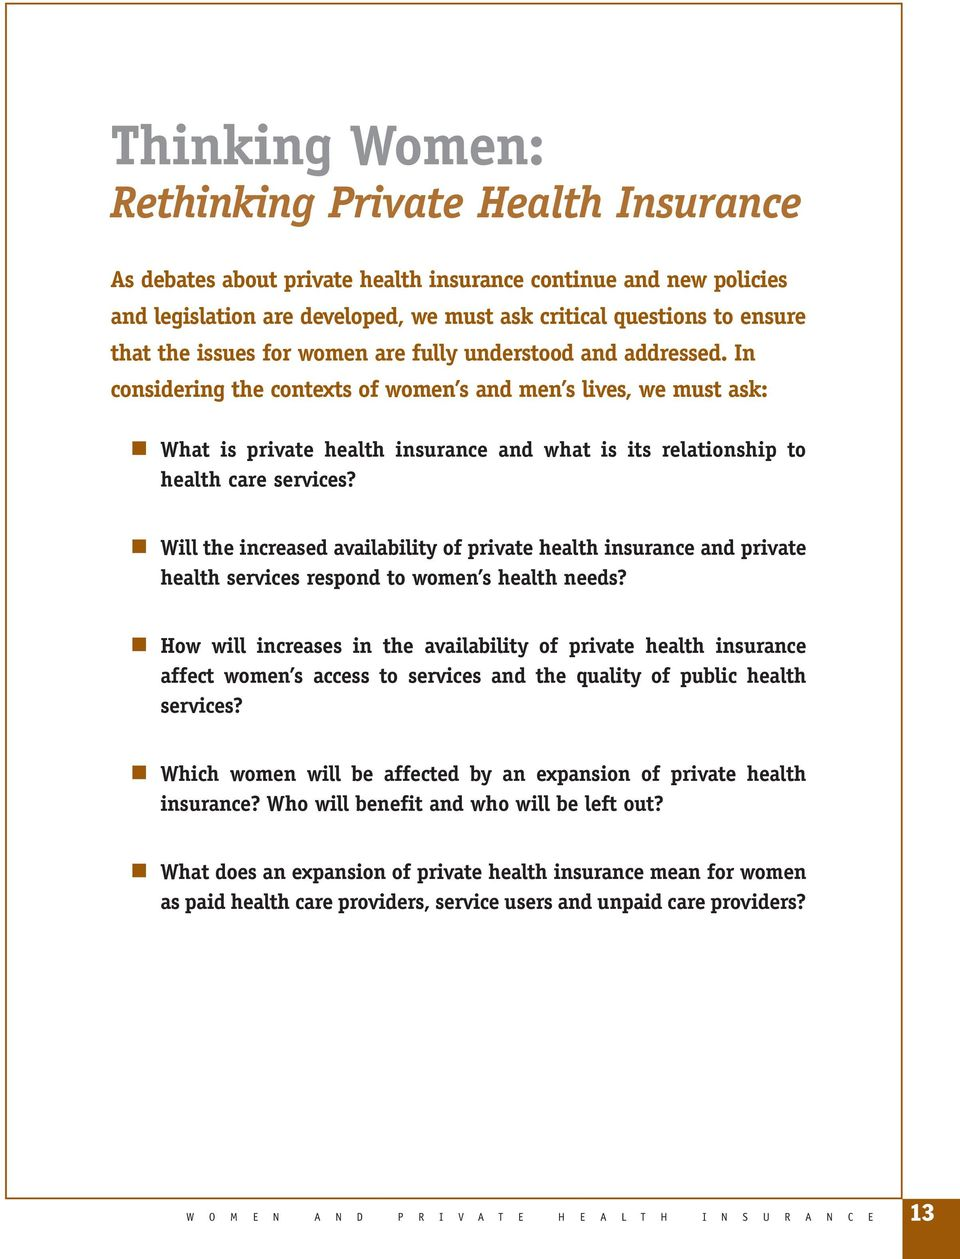 In considering the contexts of women s and men s lives, we must ask: What is private health insurance and what is its relationship to health care services?